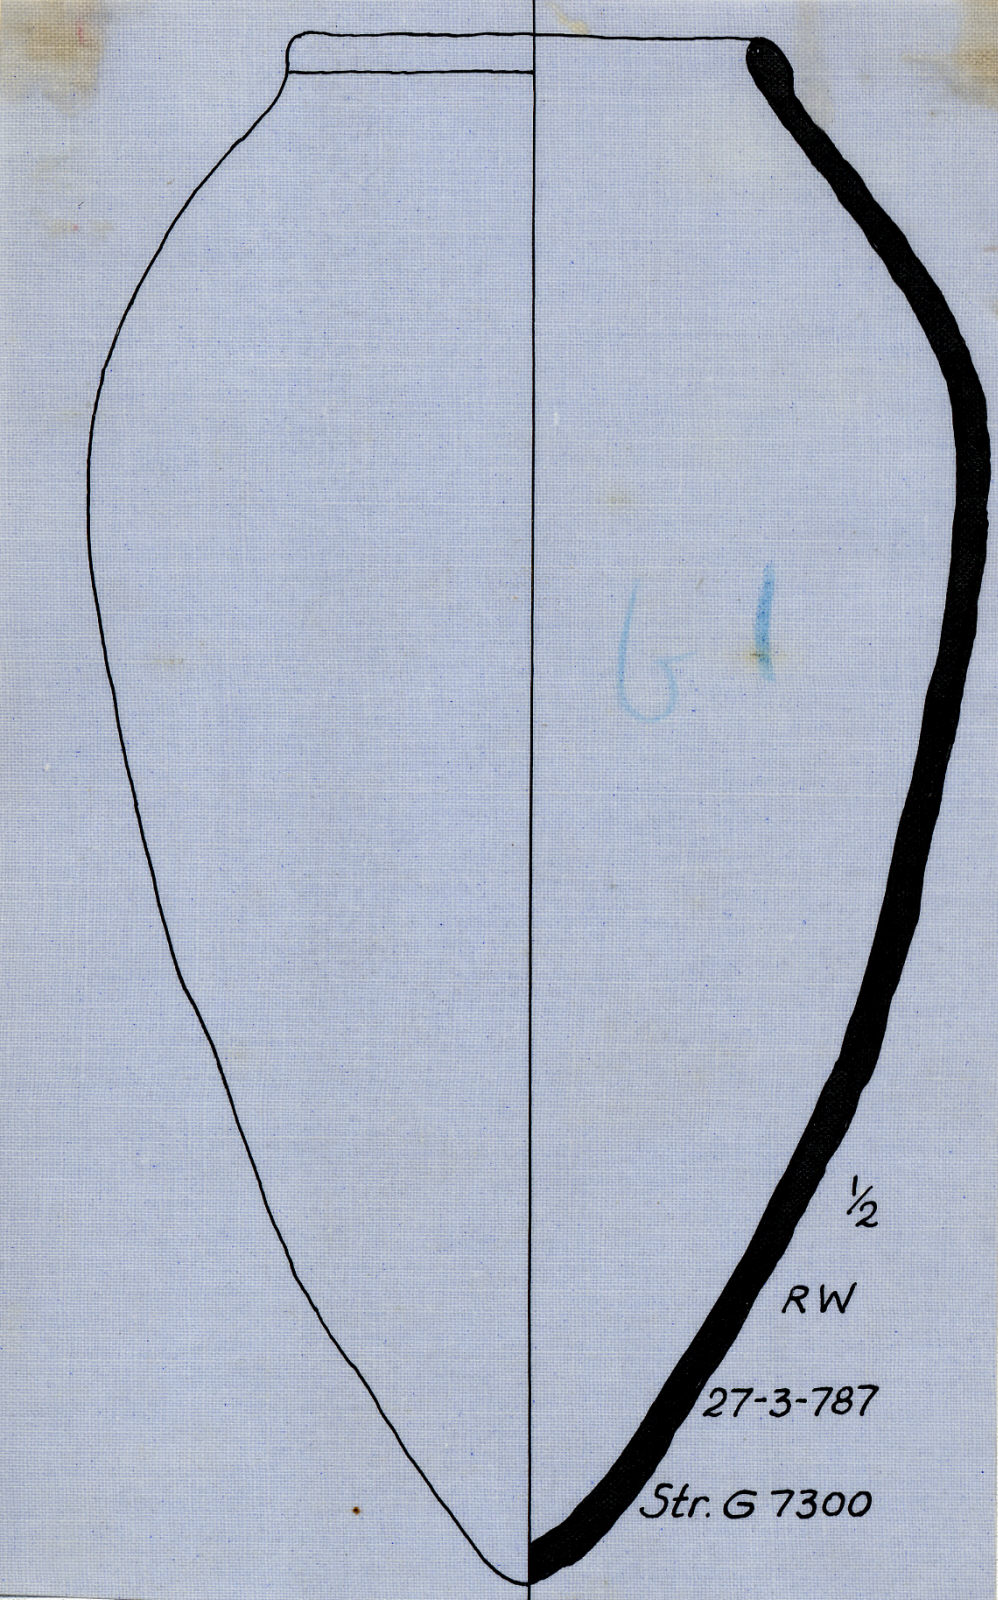 Drawings: Street G 7300, S of G 7350: pottery, offering jar